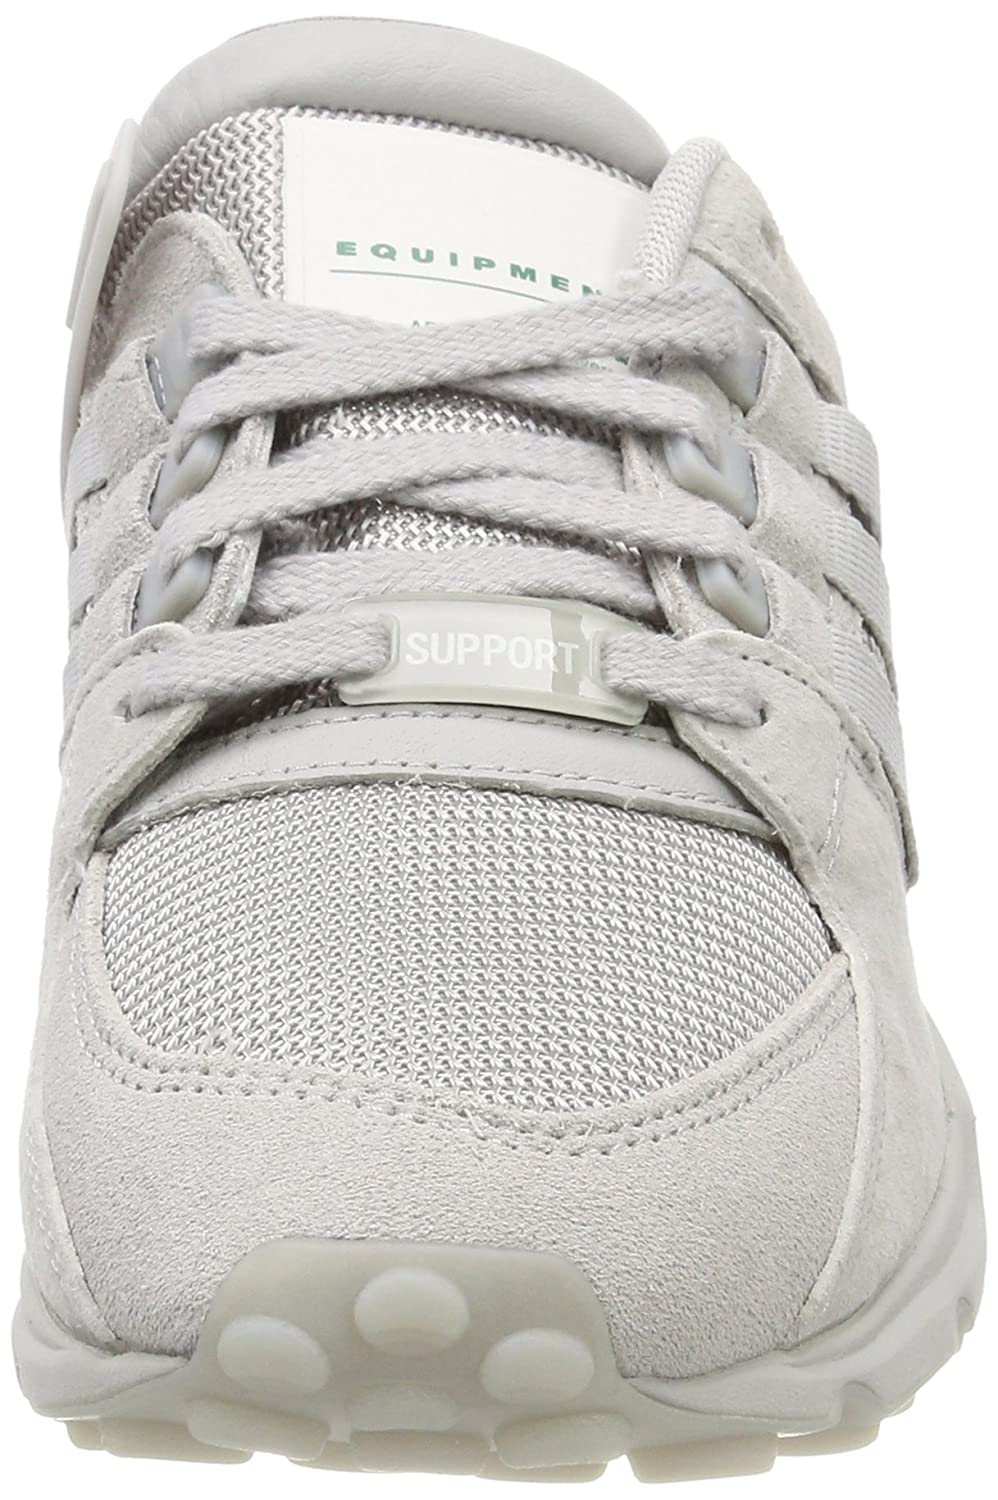 on sale 7b0ad 9d886 adidas Mens EQT Support Rf Low-Top Sneakers Amazon.co.uk Sho